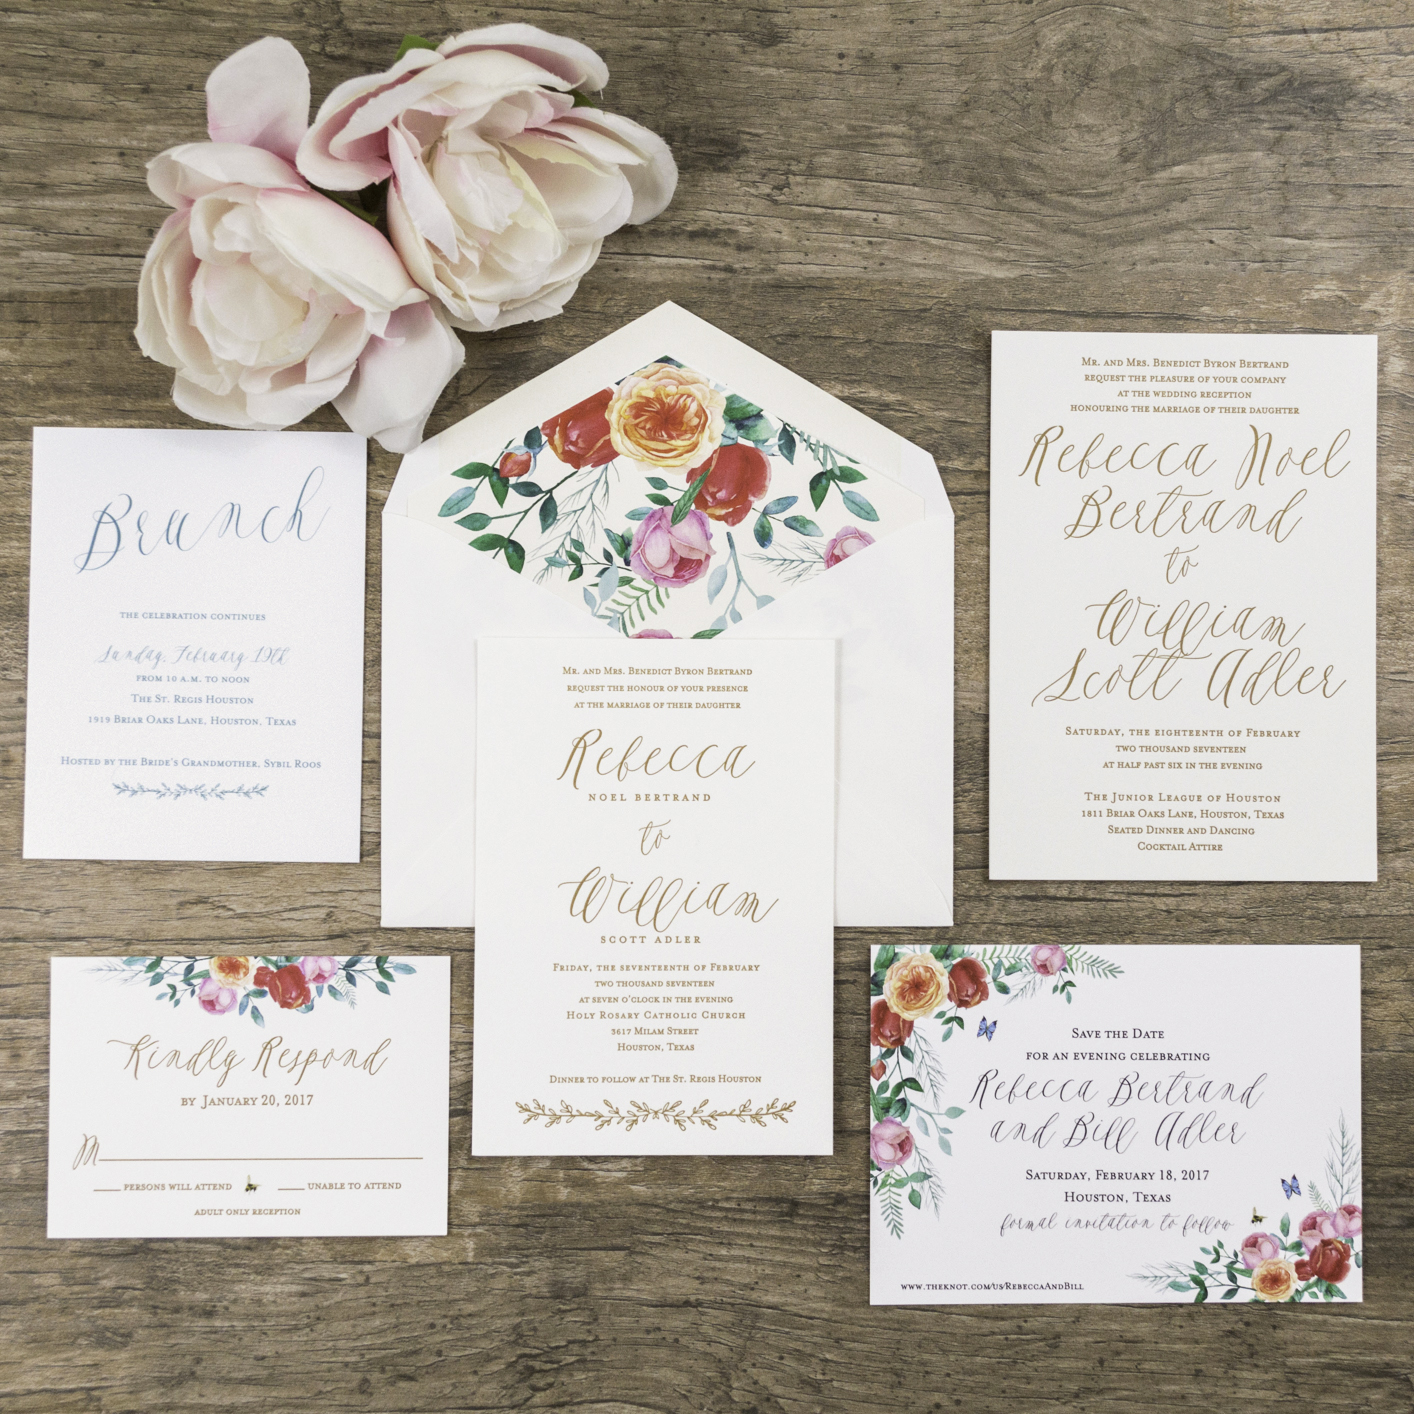 Vintage-Floral Inspired Wedding Invitations - A&P Designs